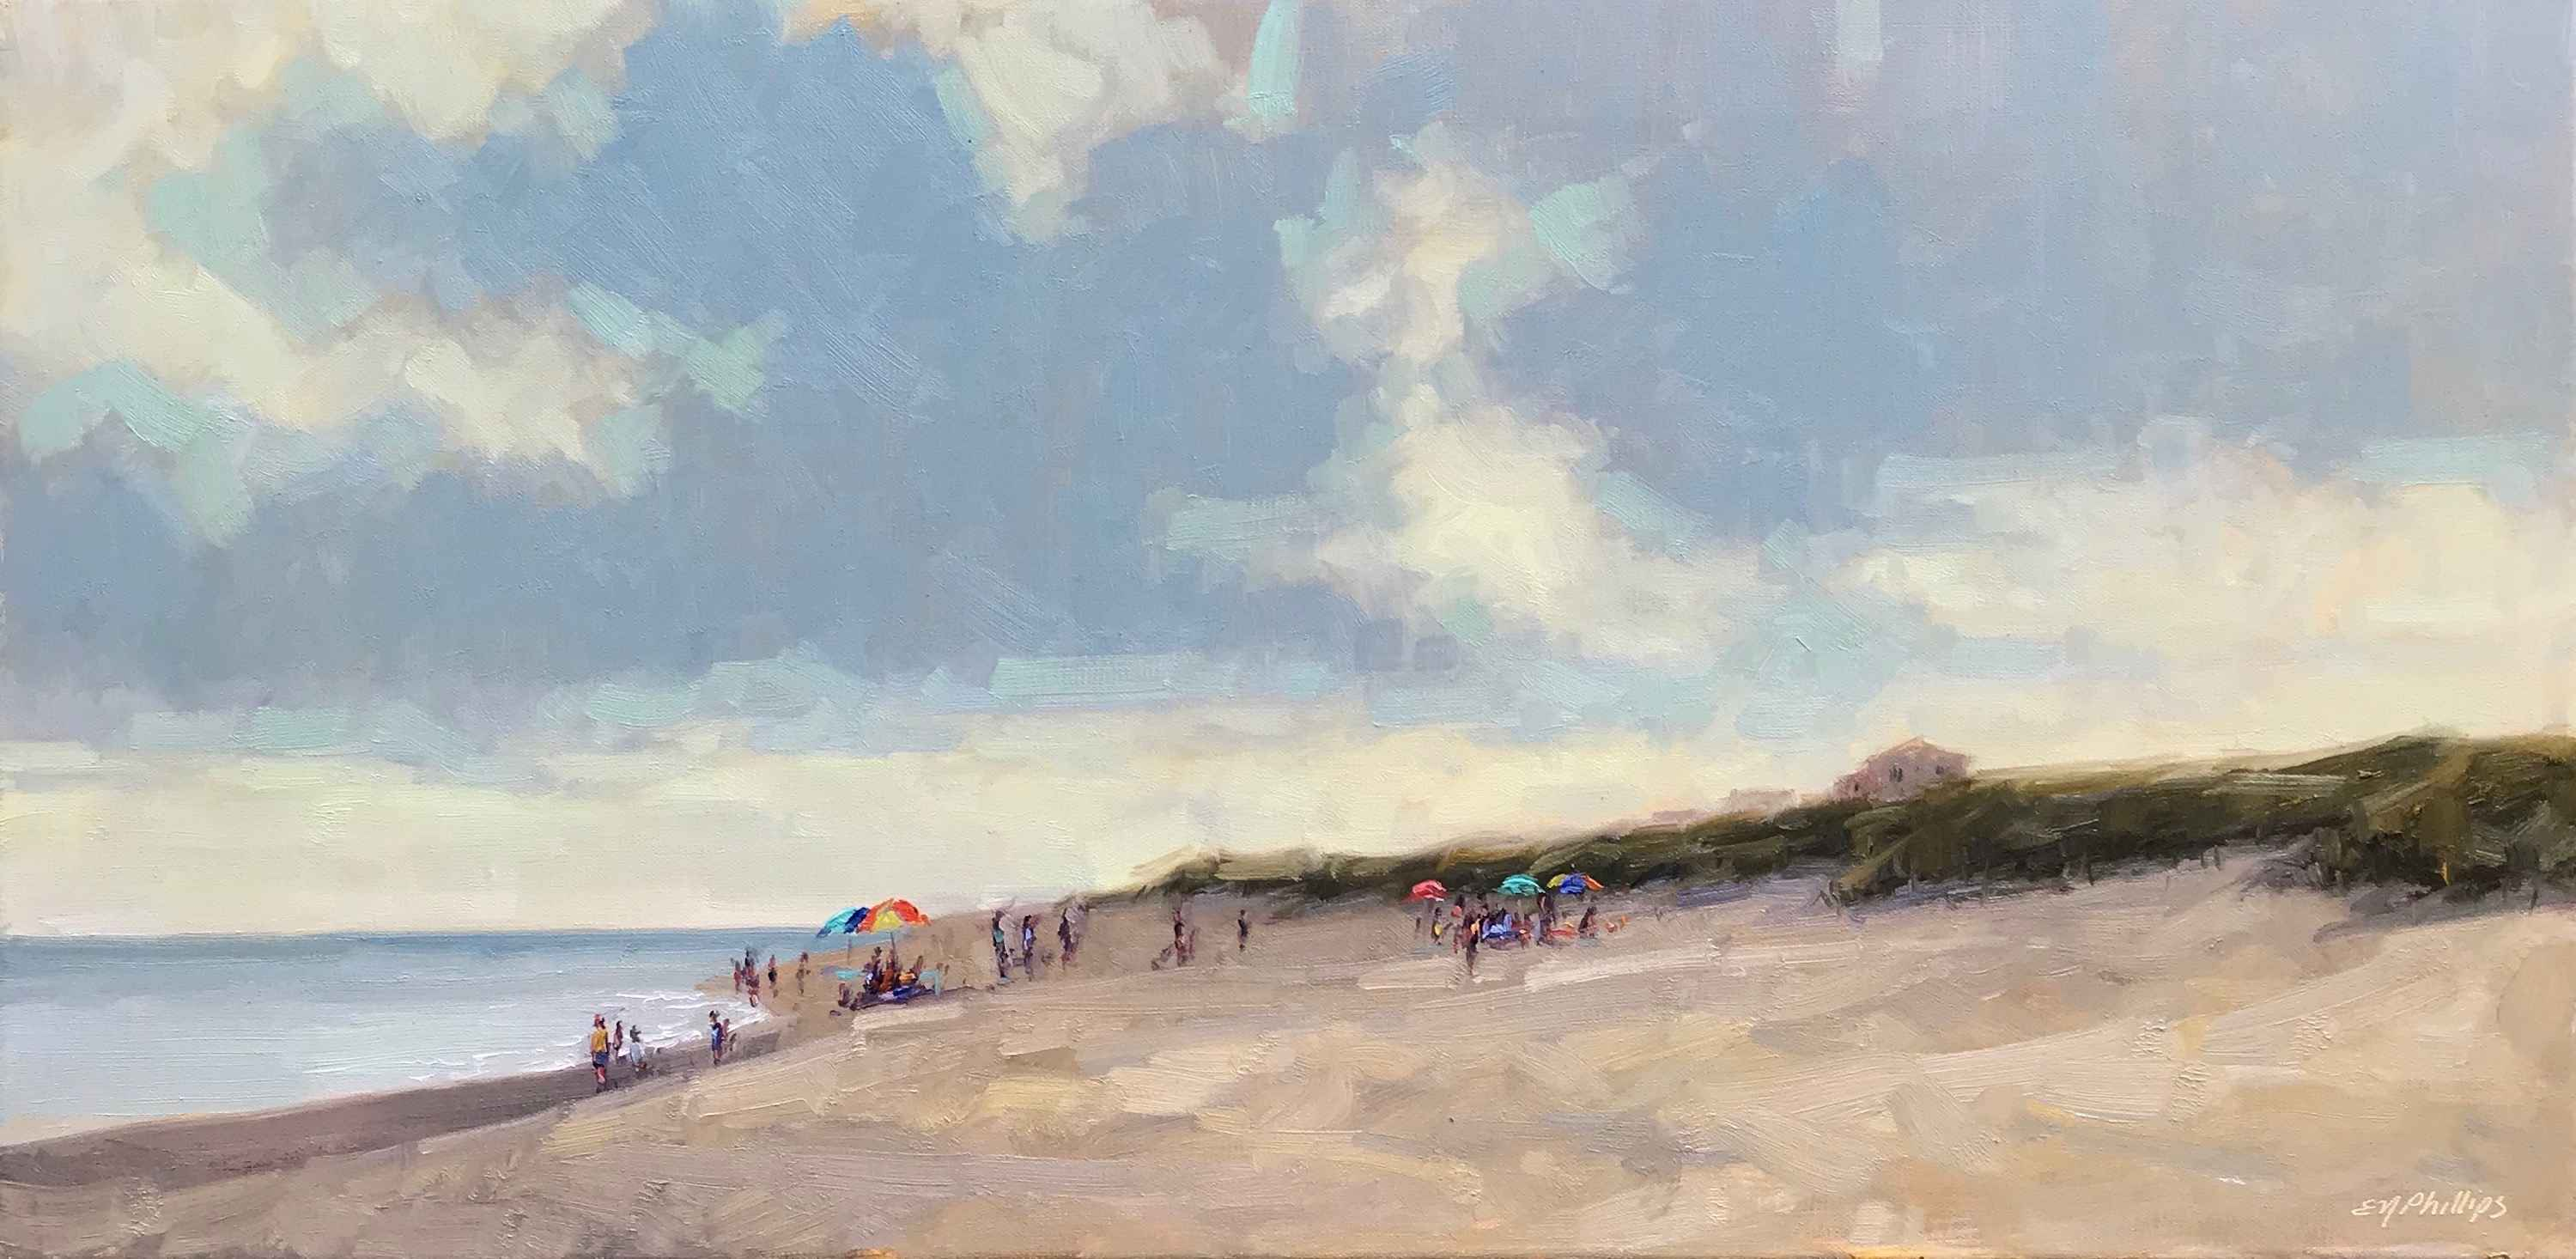 Sitting on the Beach by  Elise Phillips - Masterpiece Online